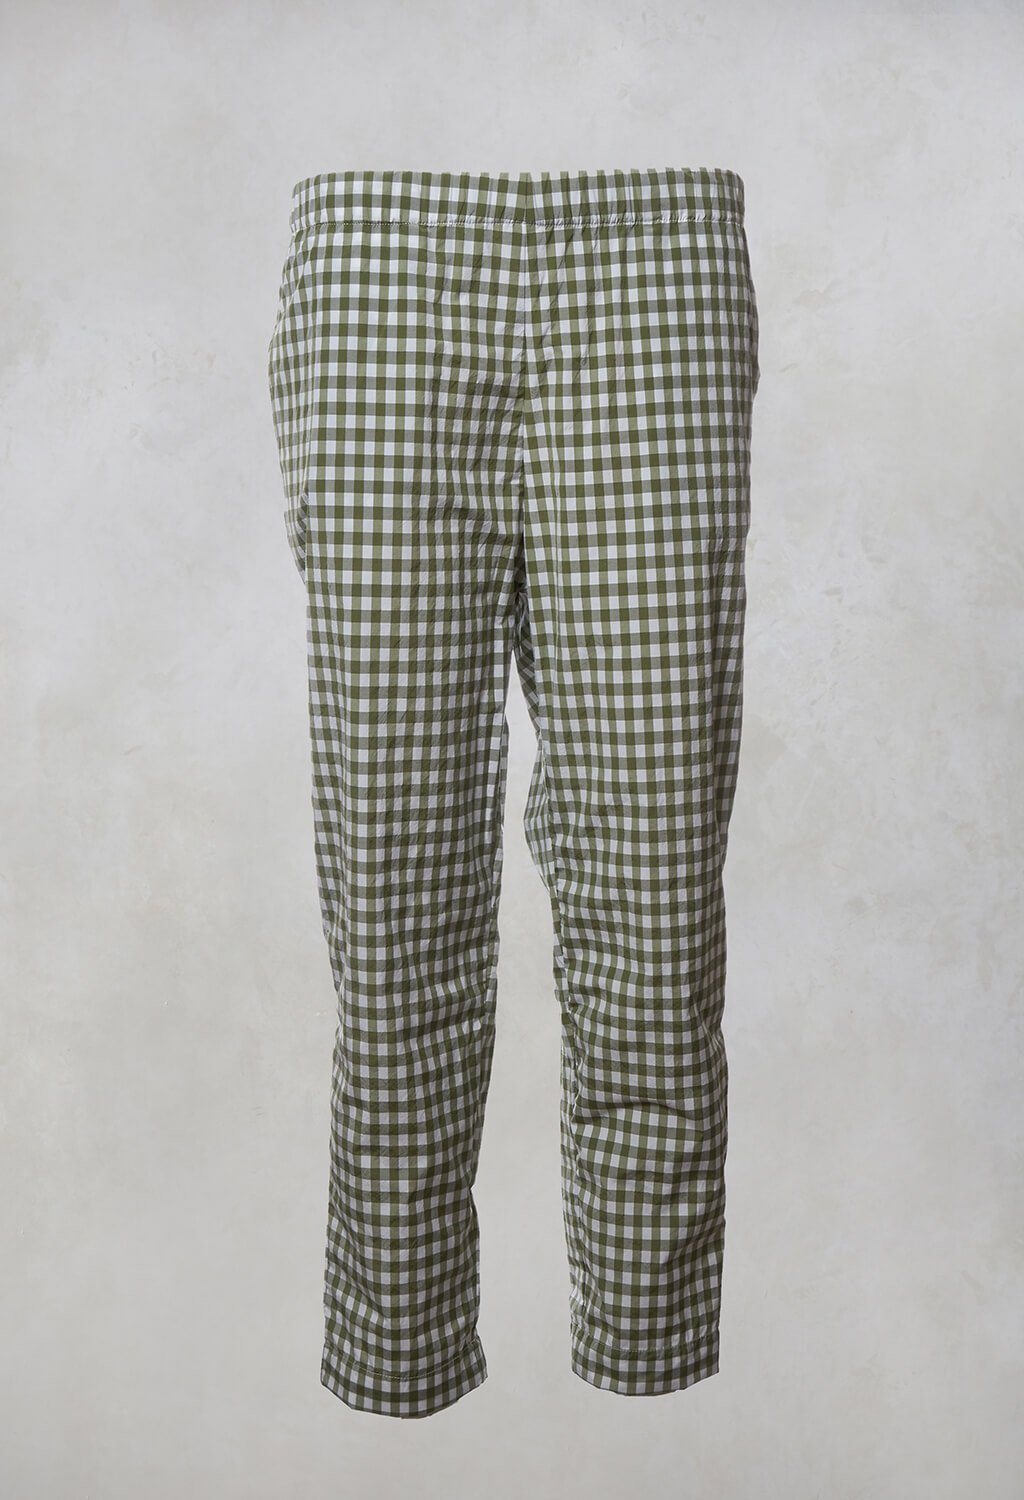 Raro Quadro Trousers in Aloe